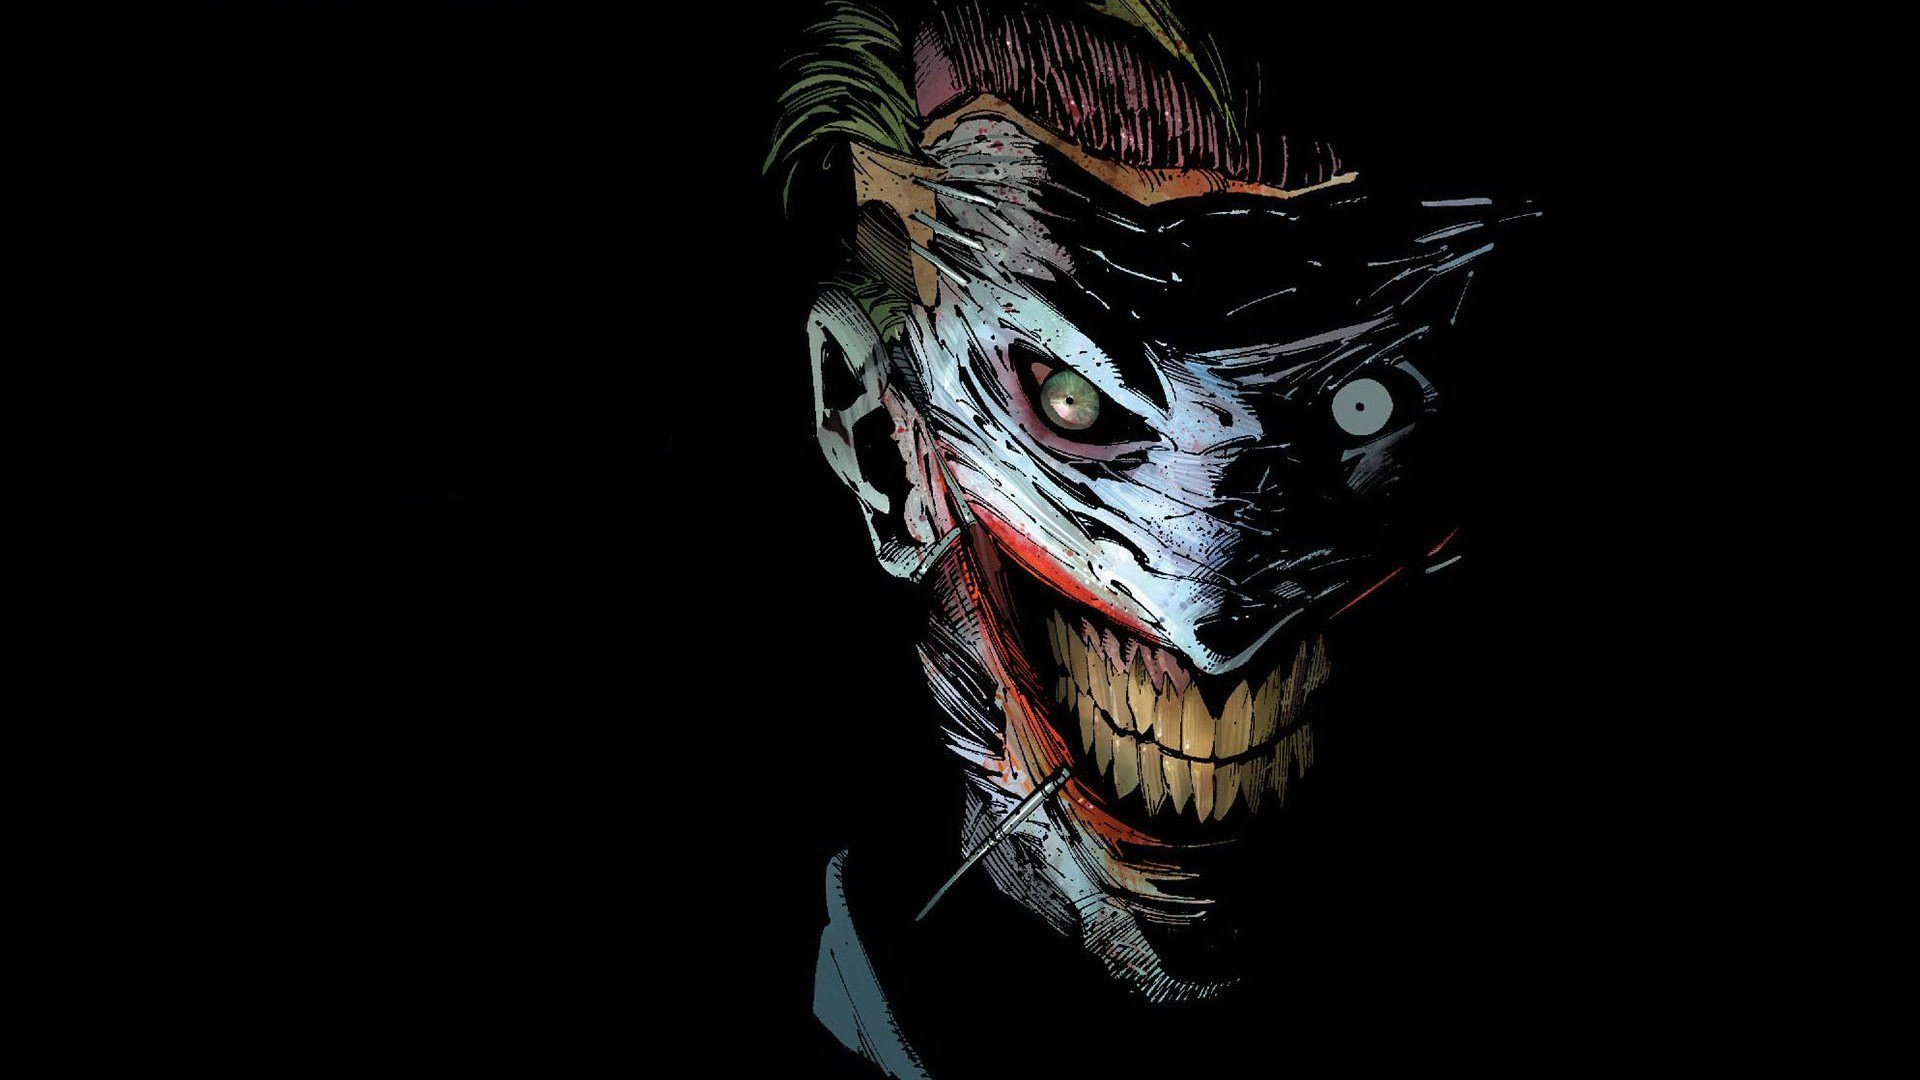 1920x1080 Batman DC Comics The Joker Wallpaper